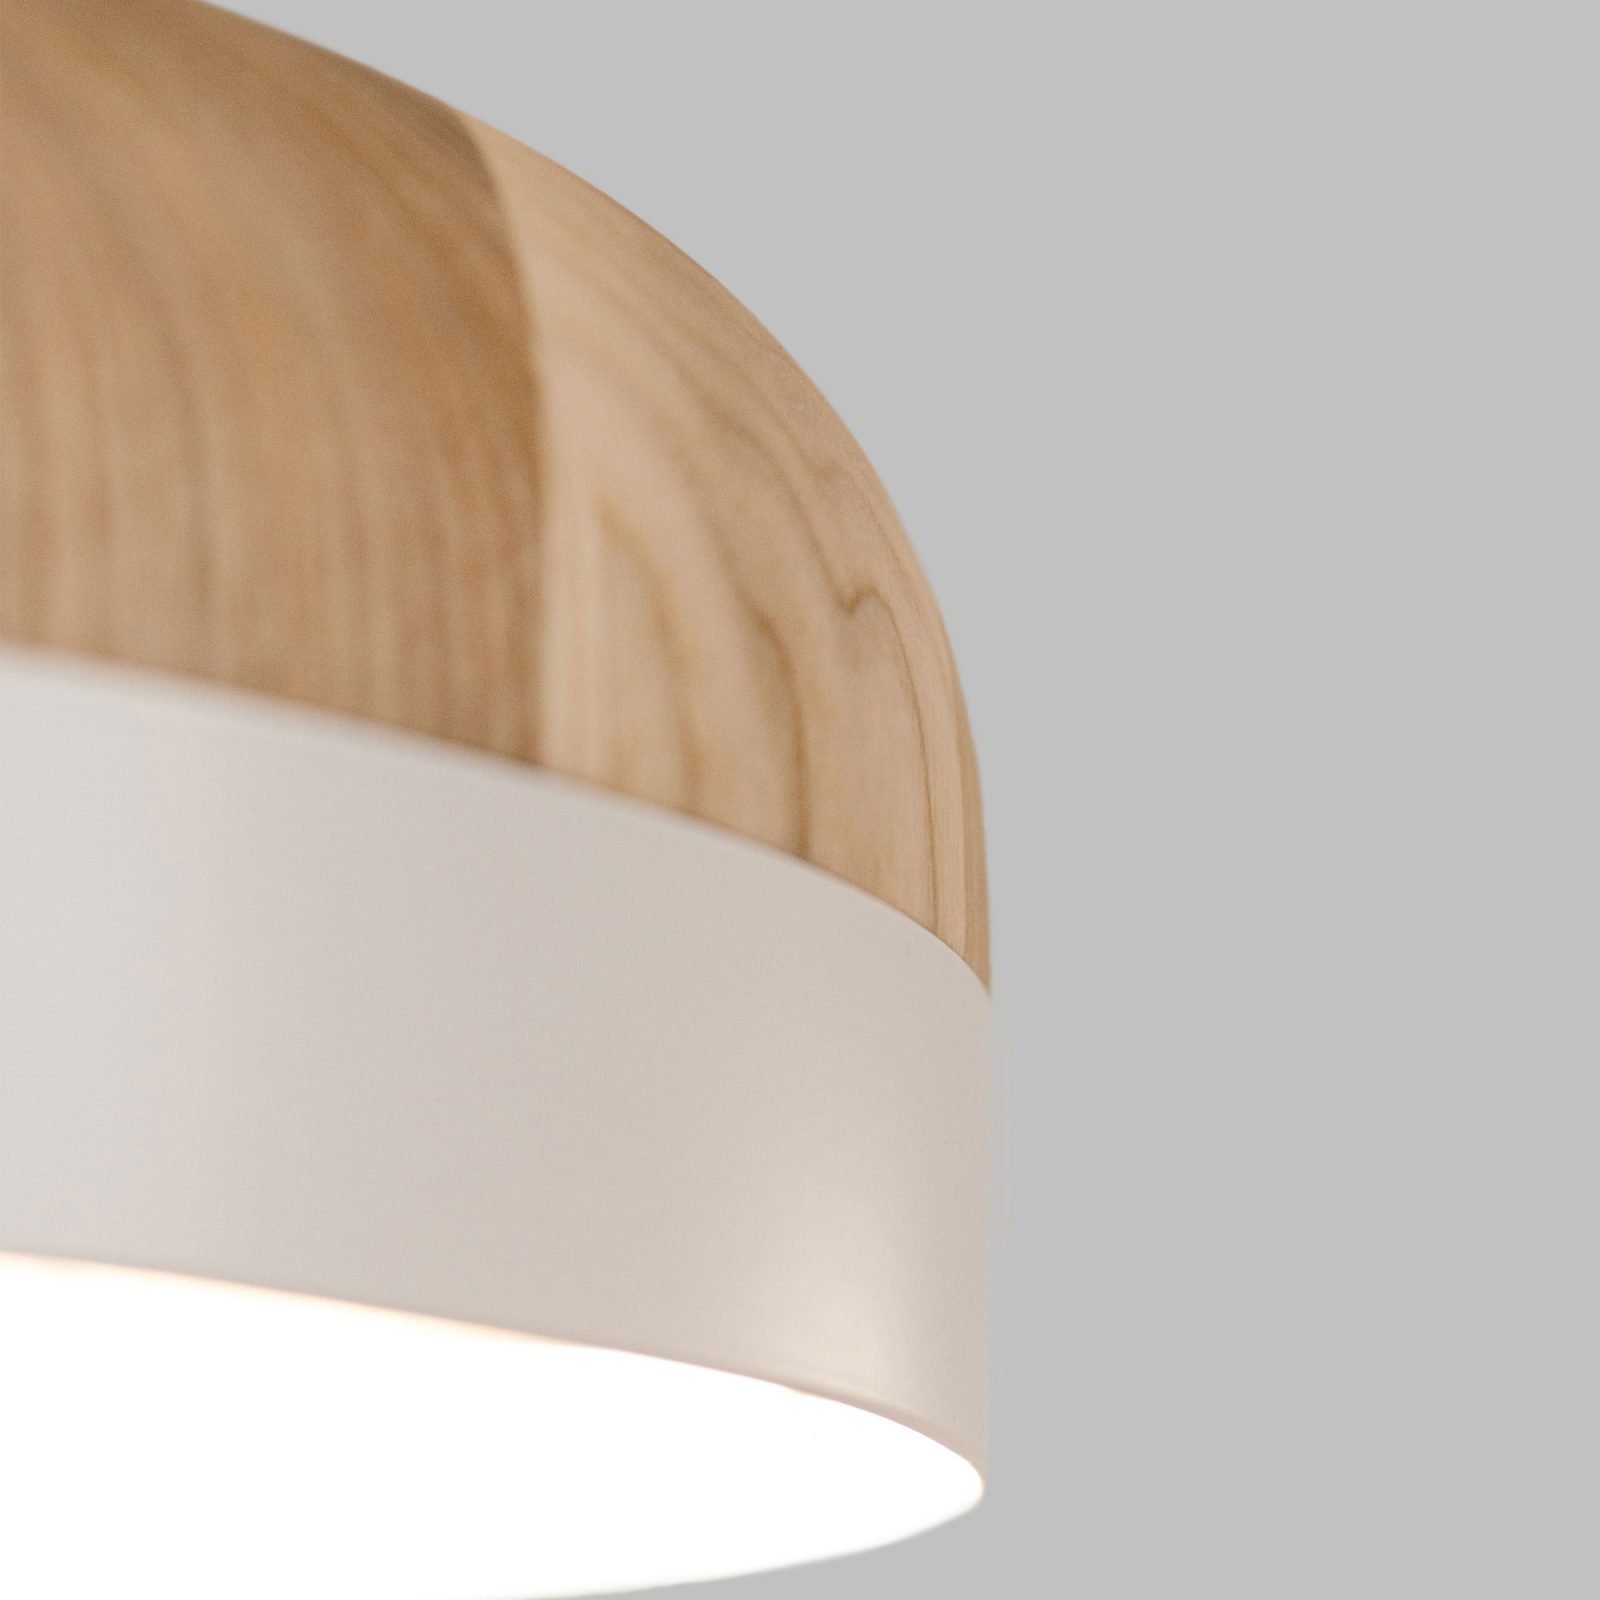 nut-b-ceiling-light-5